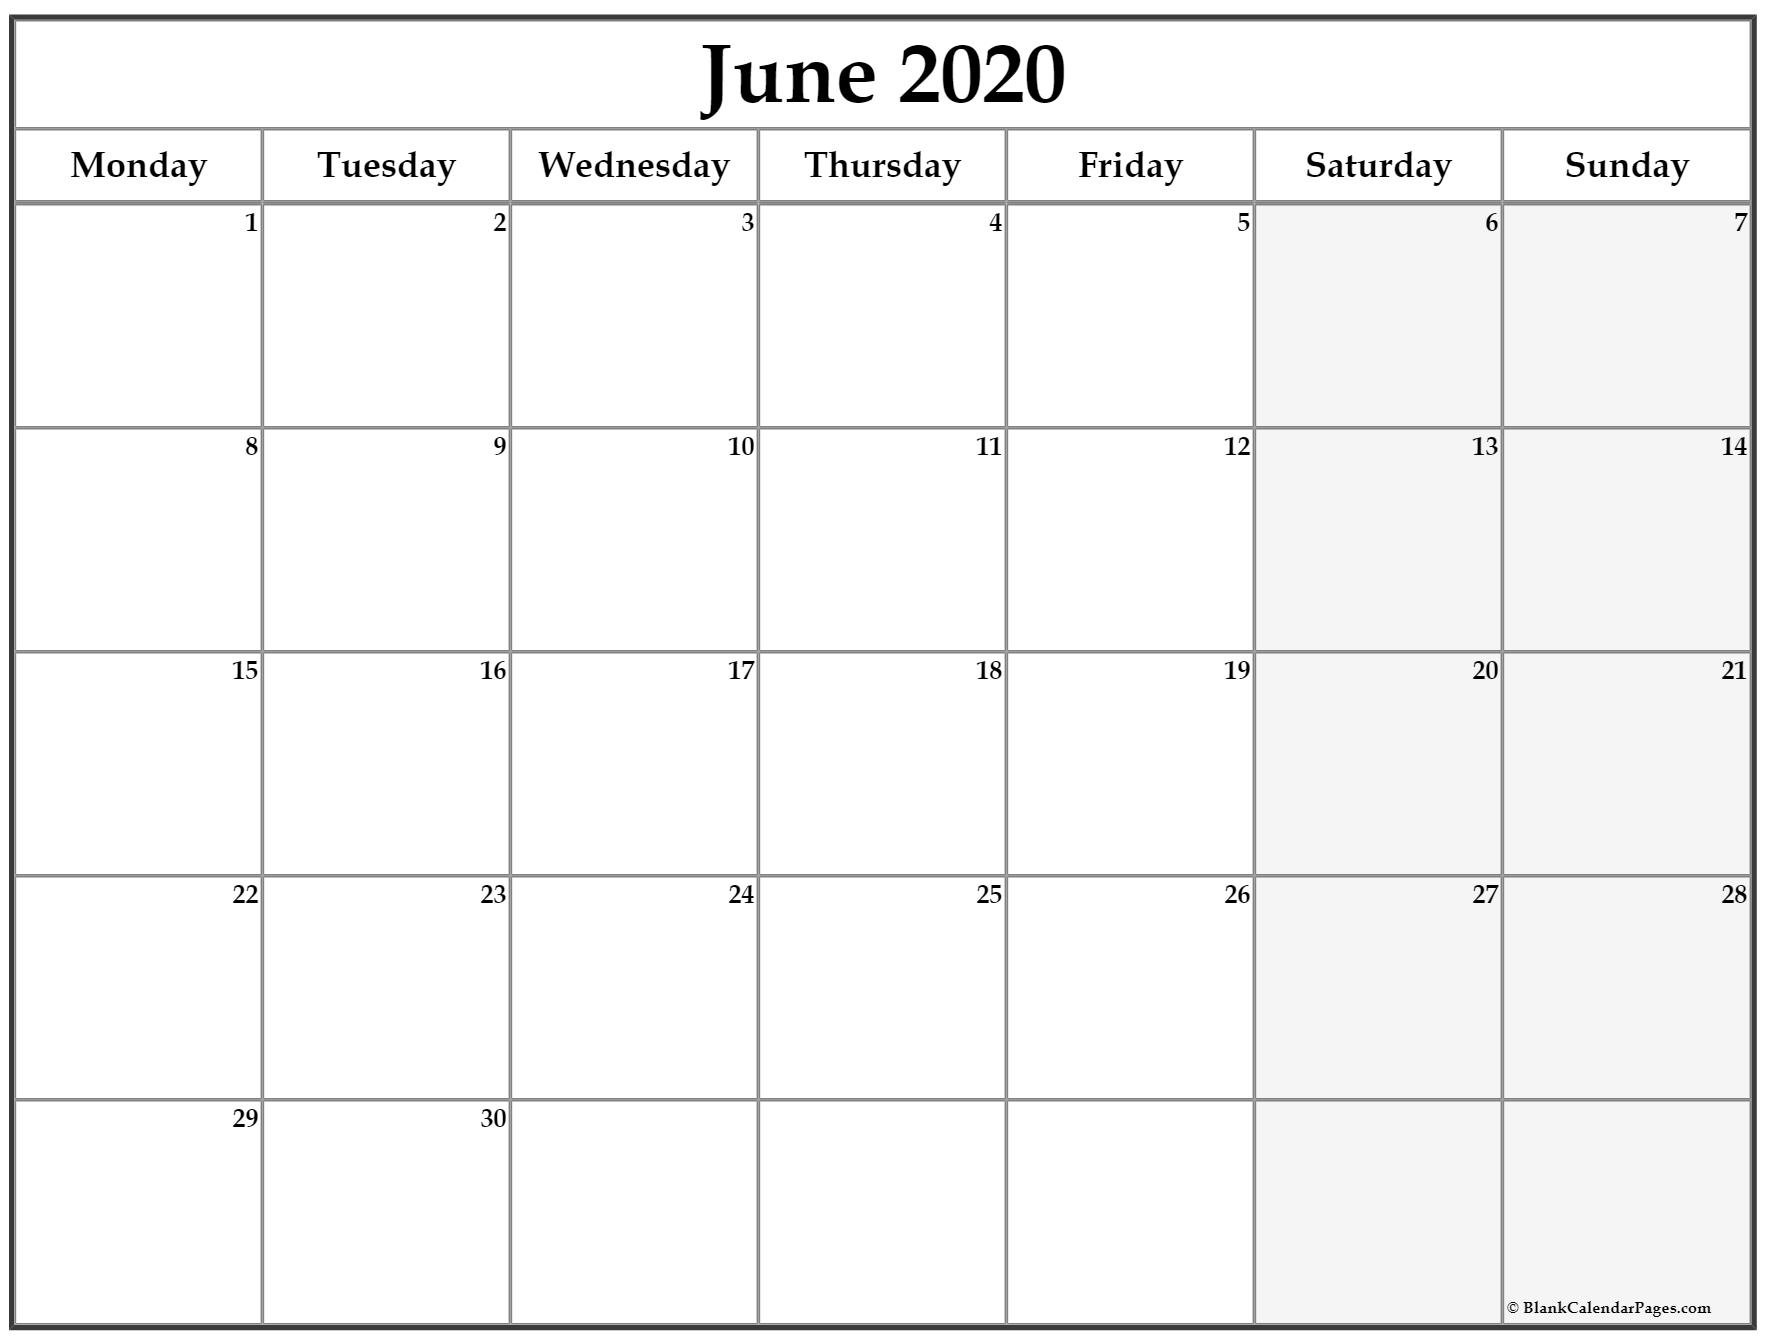 June 2020 Monday Calendar | Monday To Sunday June Monday To Friday Downloadable Calendar